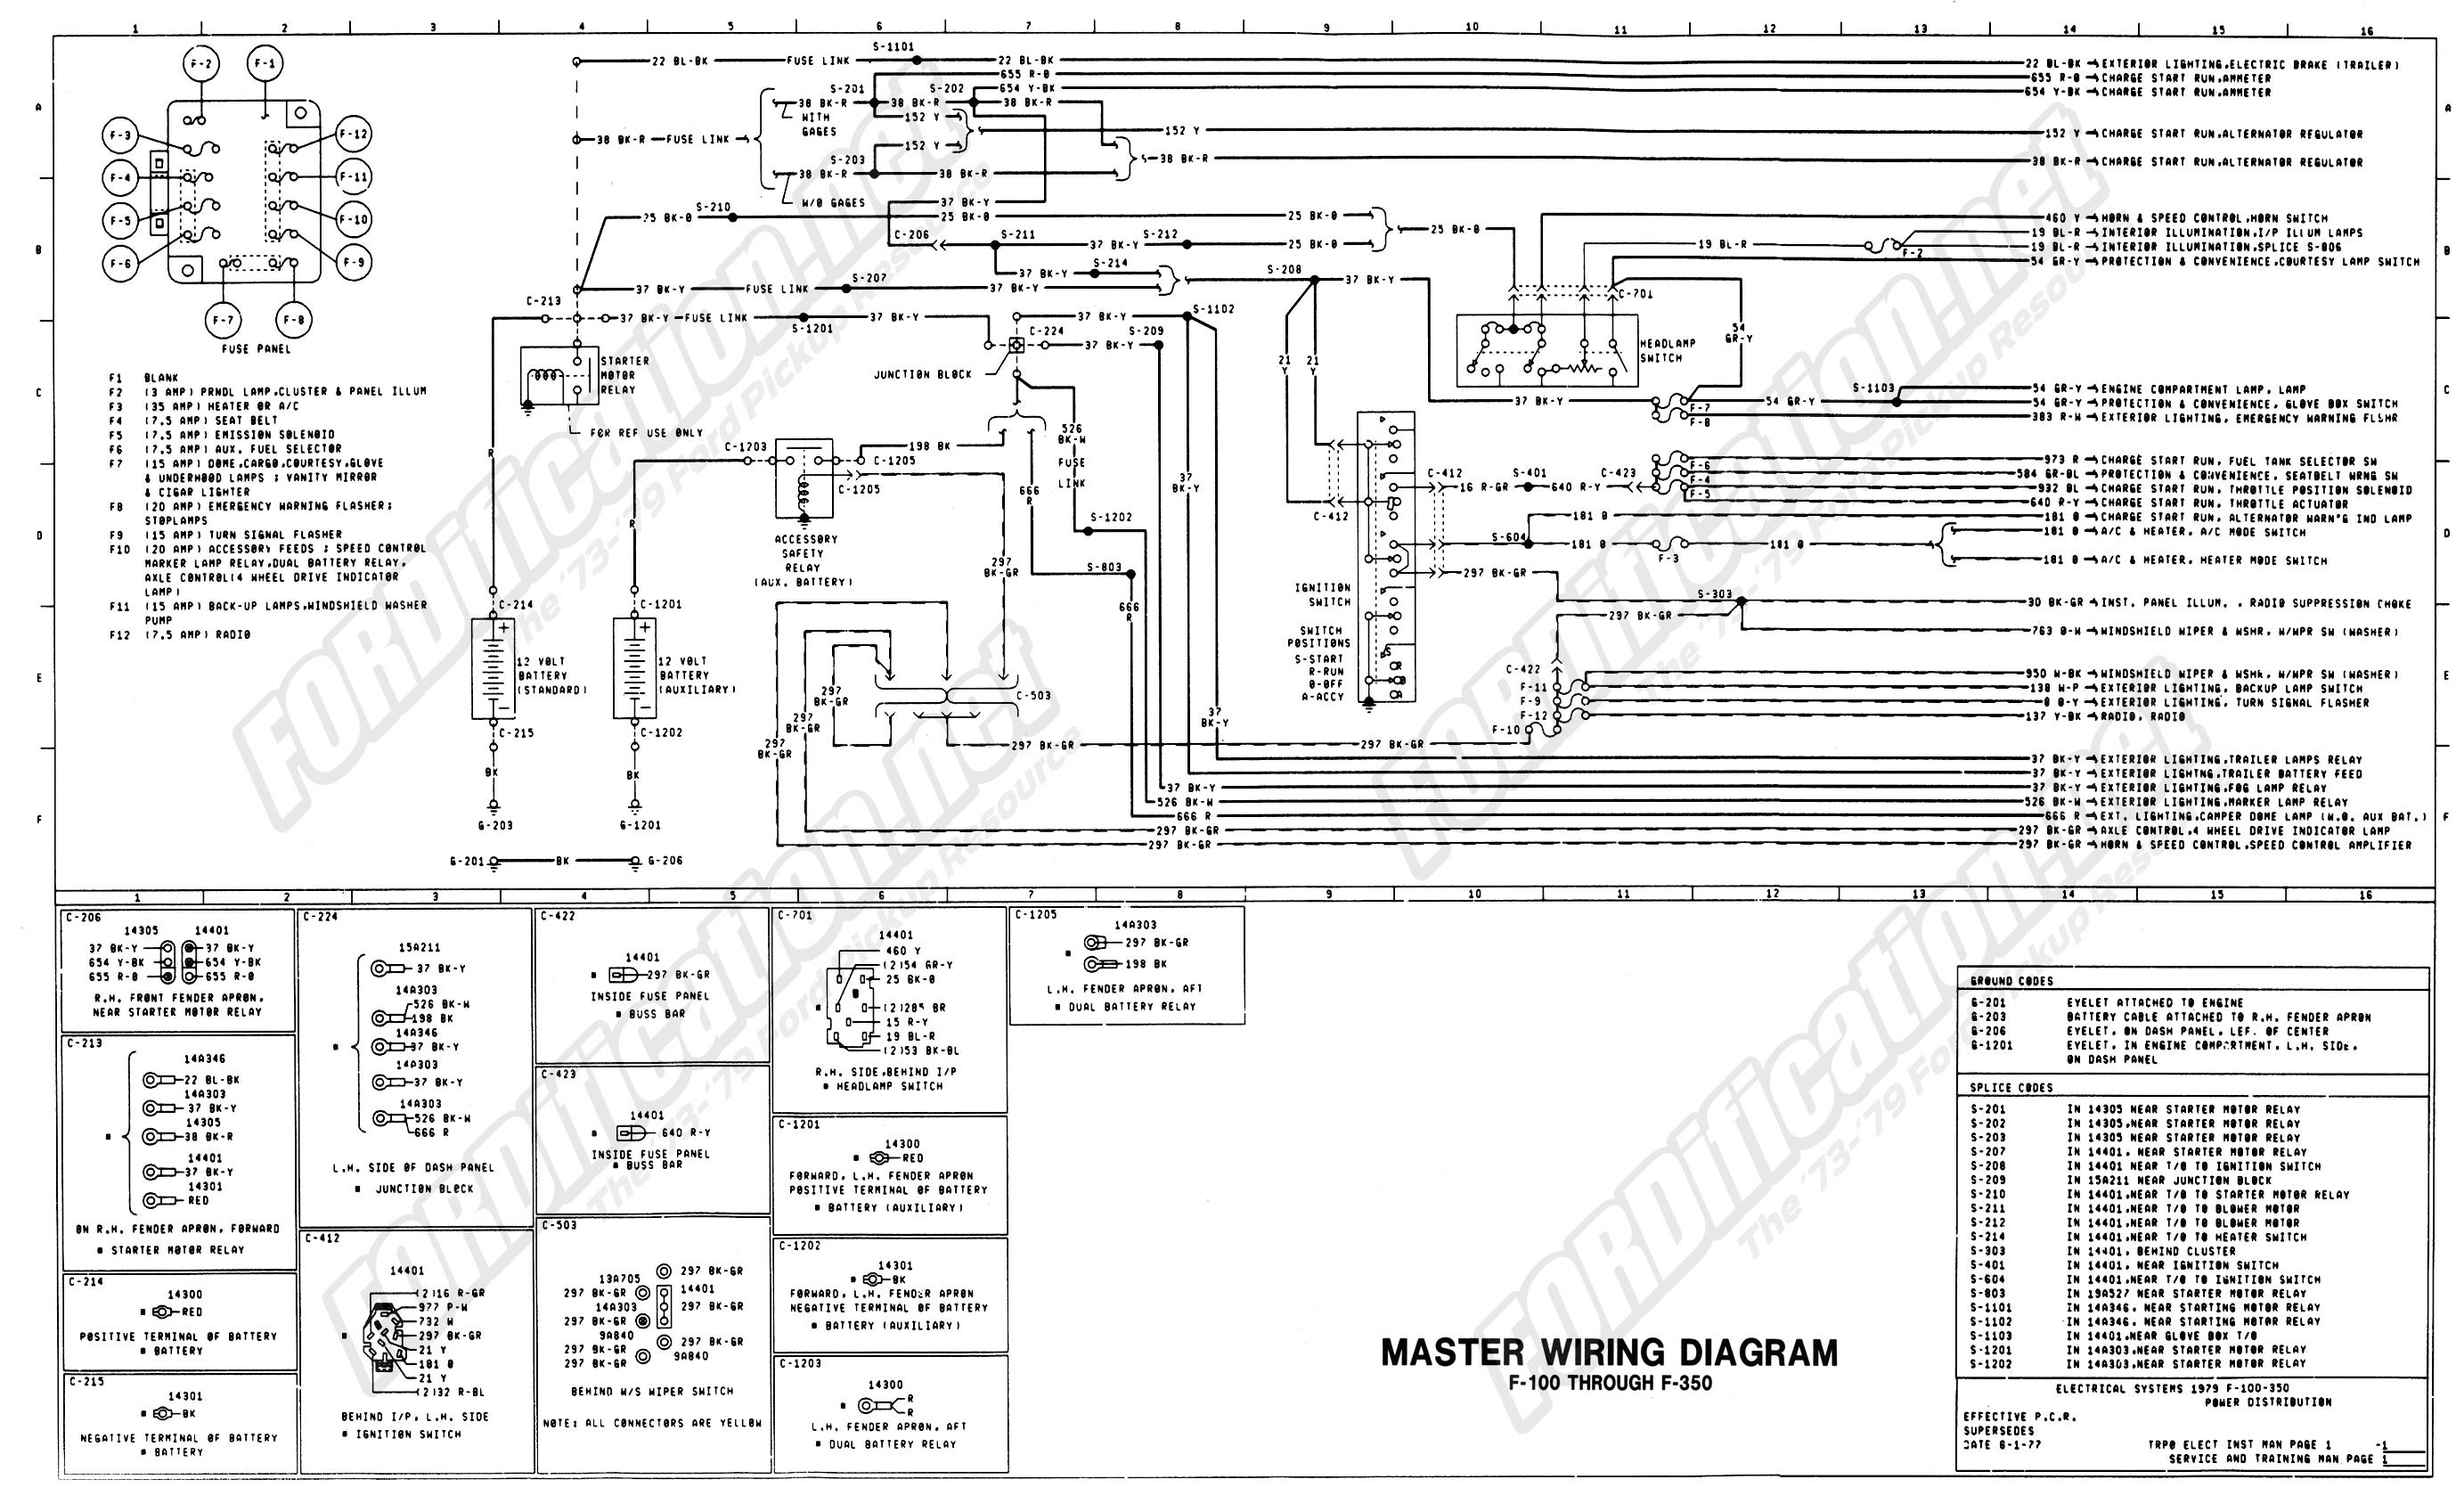 2004 ford Ranger Wiring Diagram 79 F150 solenoid Wiring Diagram ford Truck Enthusiasts forums Of 2004 ford Ranger Wiring Diagram